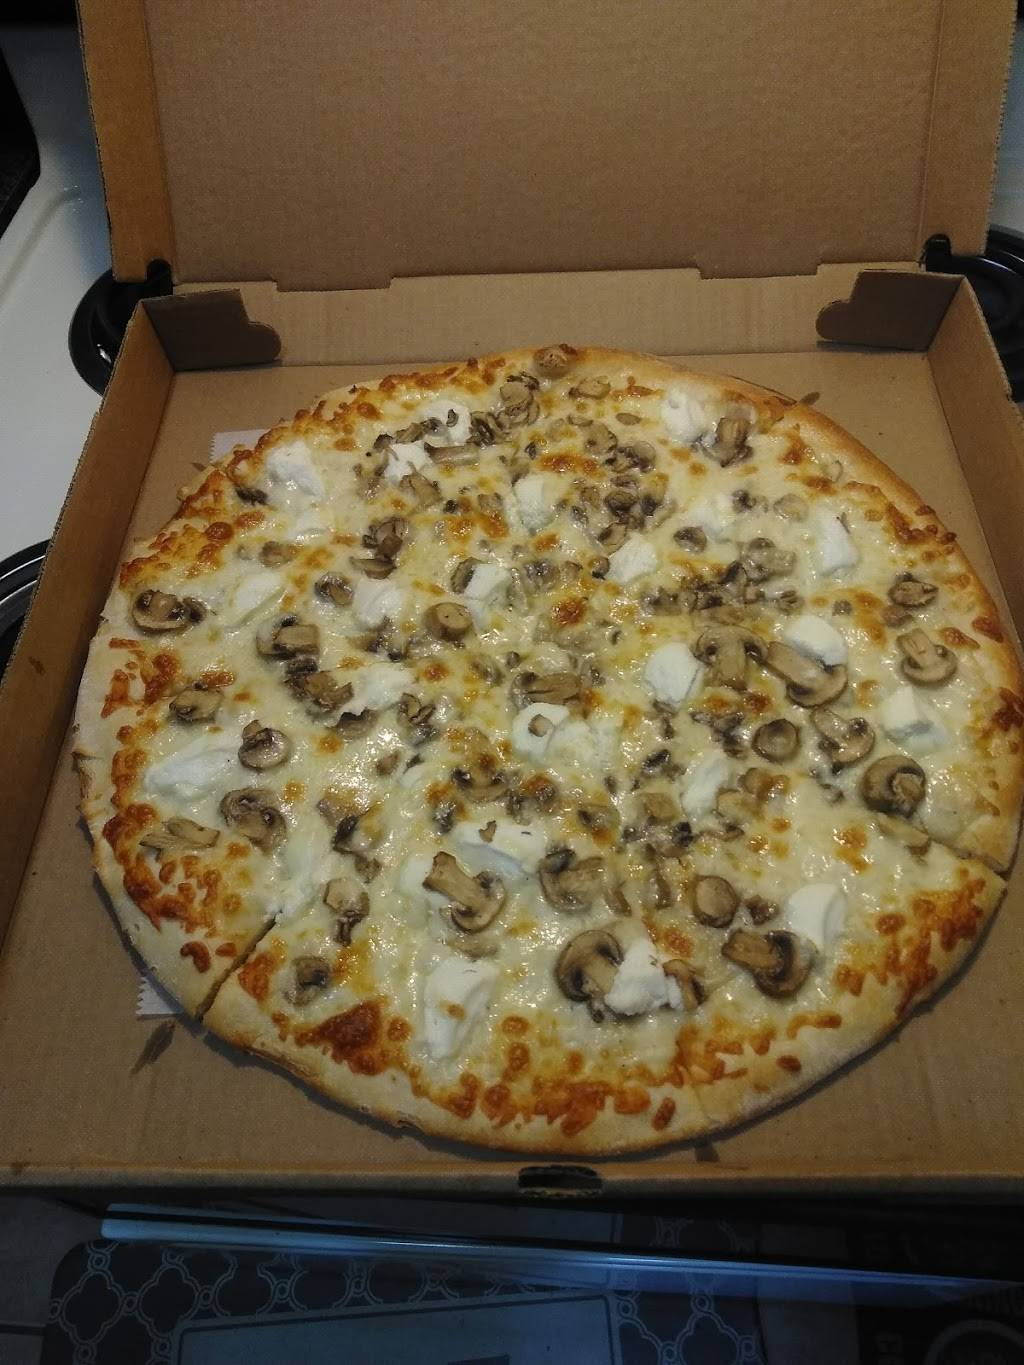 Dars Pizza   restaurant   16110 Everly Rd Suite #2, Hagerstown, MD 21740, USA   2408502948 OR +1 240-850-2948